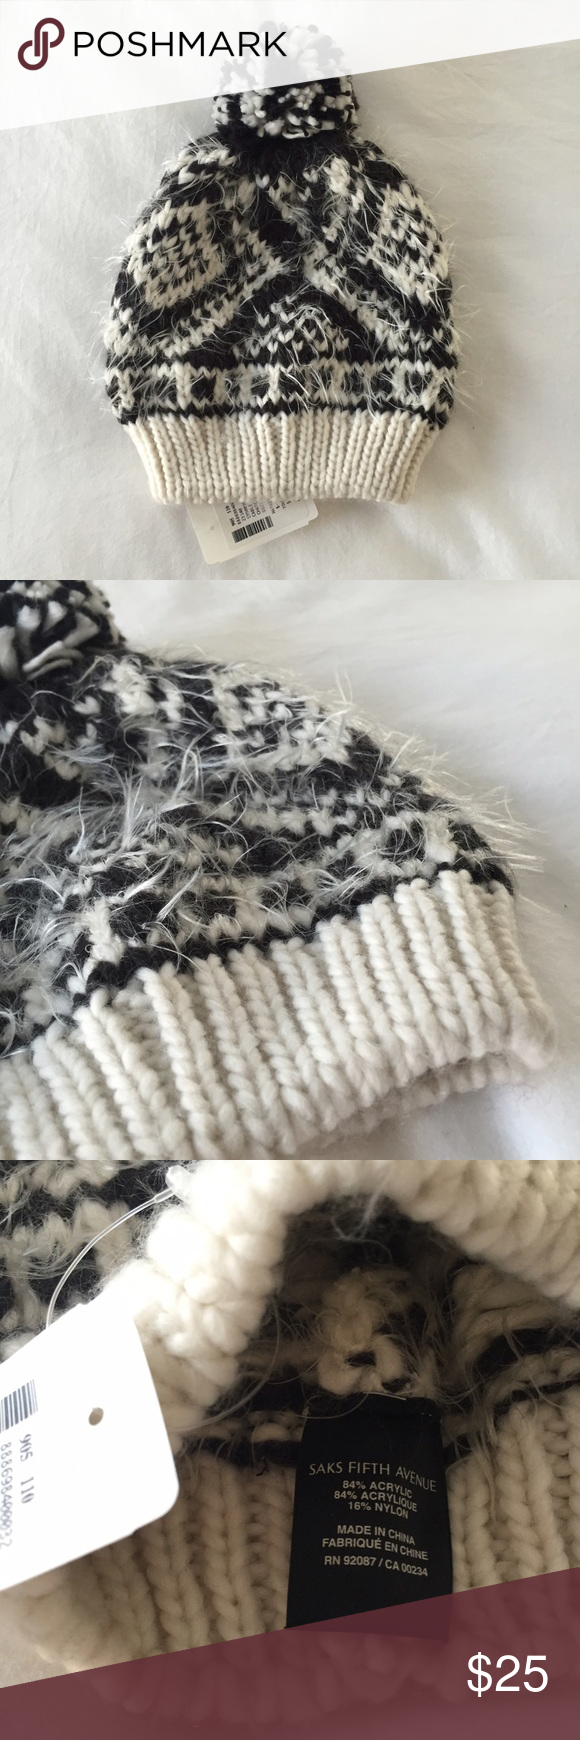 Saks 5th Avenue Fuzzy Pom Beanie Hat Brand new with tags no defects. Smoke free pet friendly Saks Fifth Avenue Accessories Hats